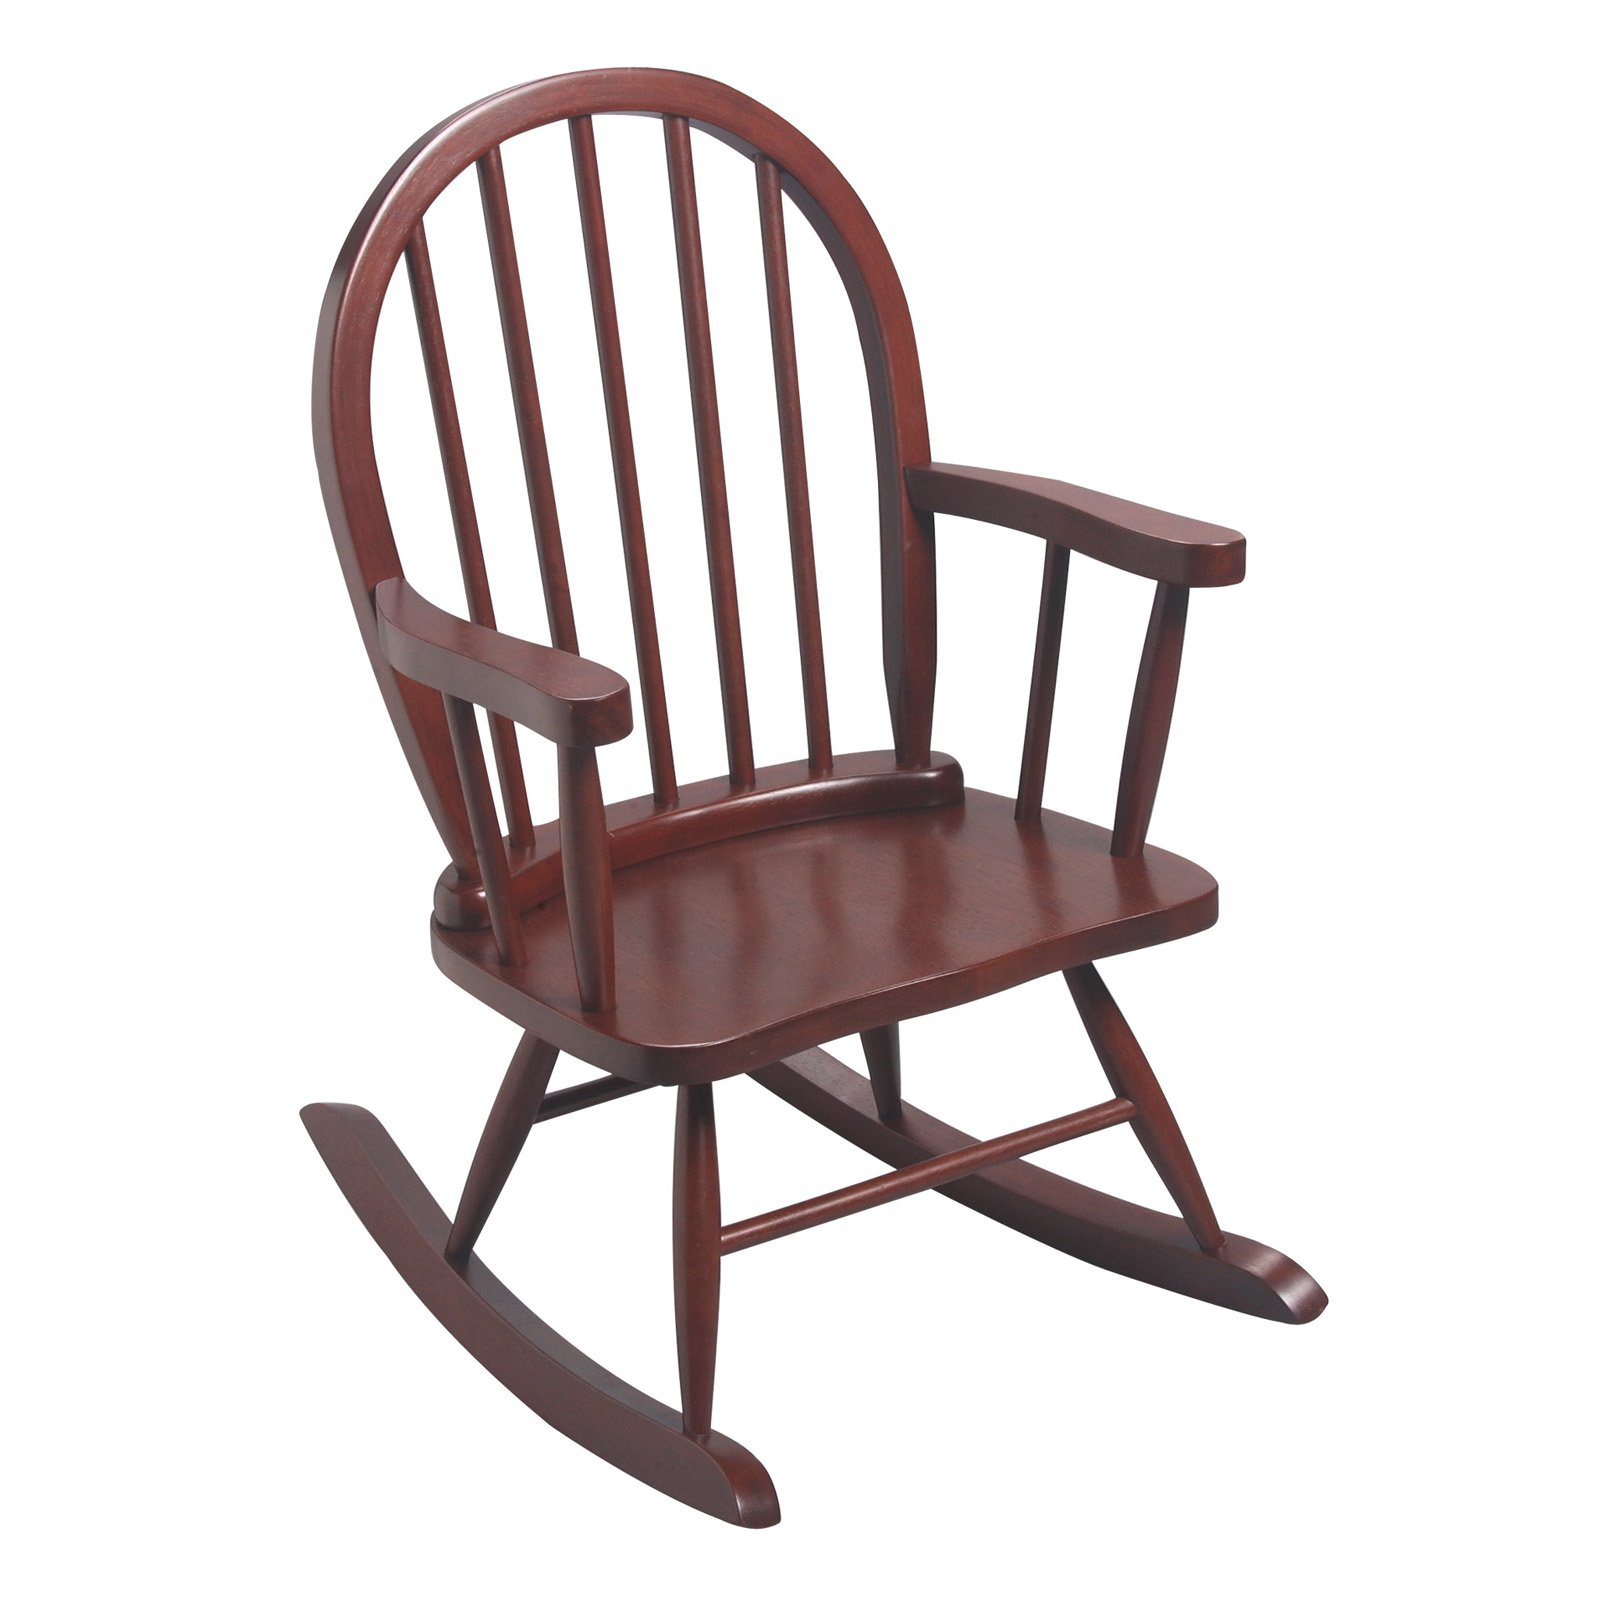 Gift Mark Windsor Childrens 3600 Rocking Chair Cherry by Gift Mark